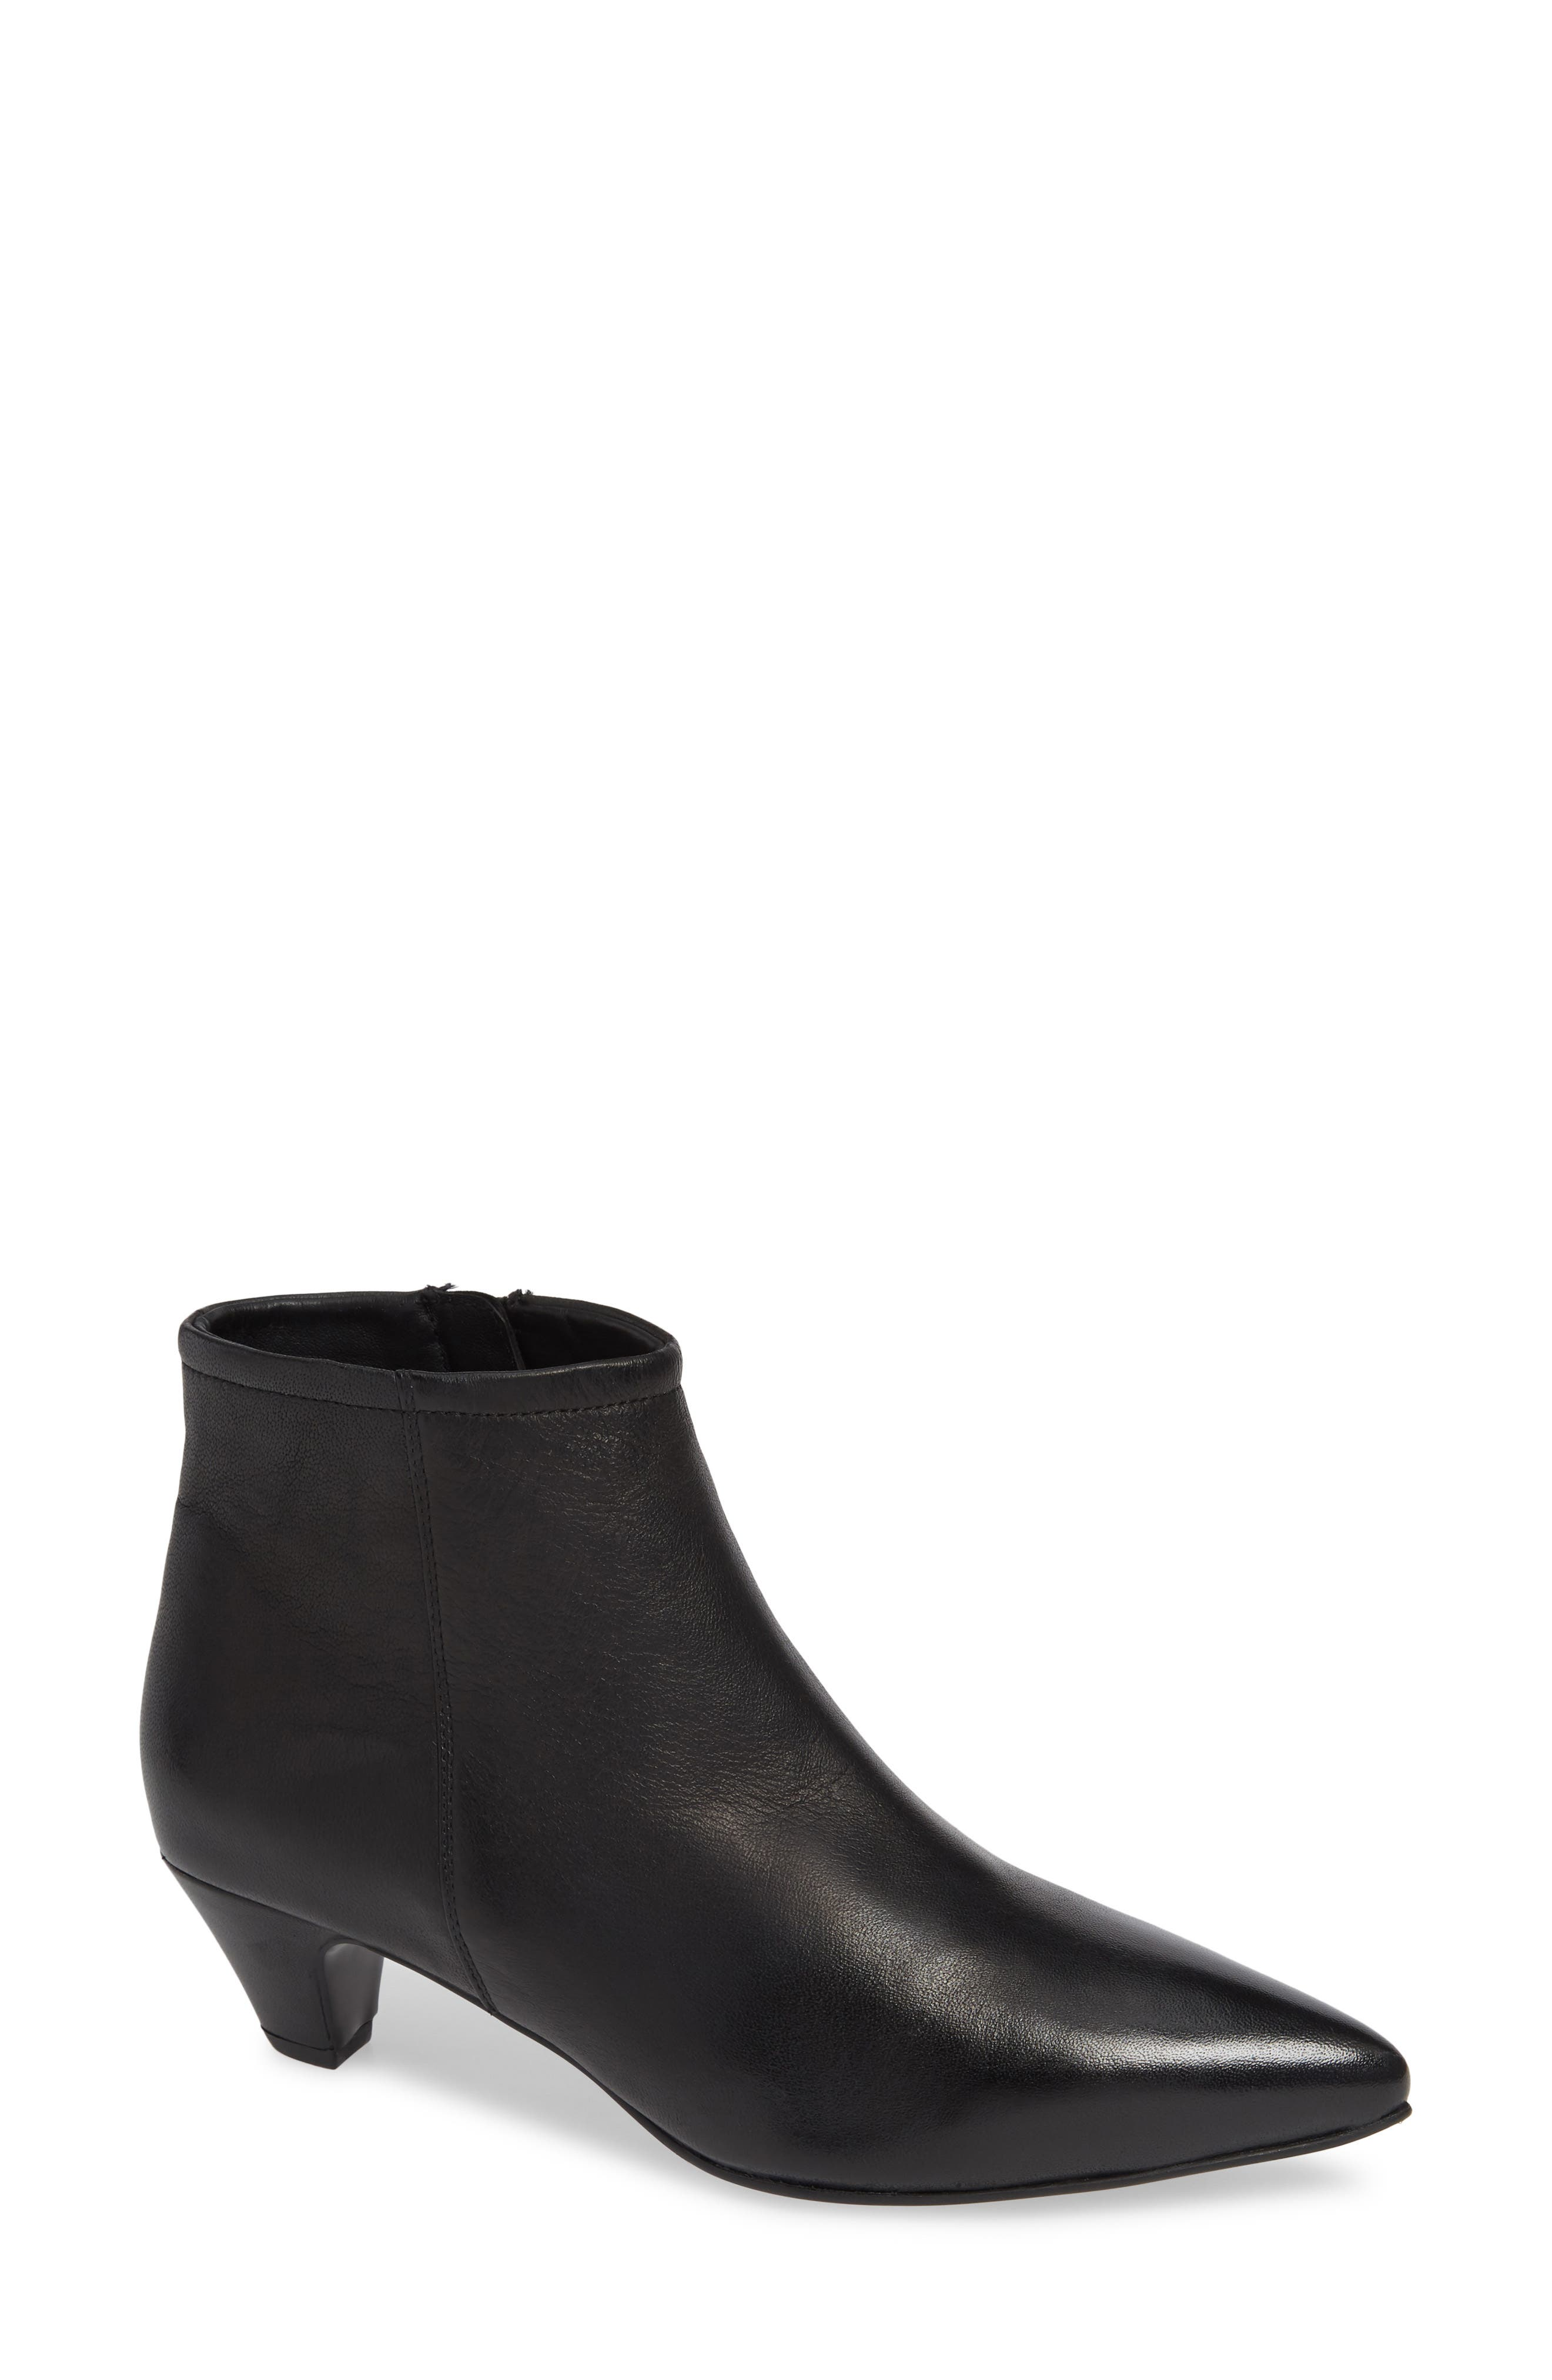 SEYCHELLES Biome Bootie, Main, color, BLACK LEATHER